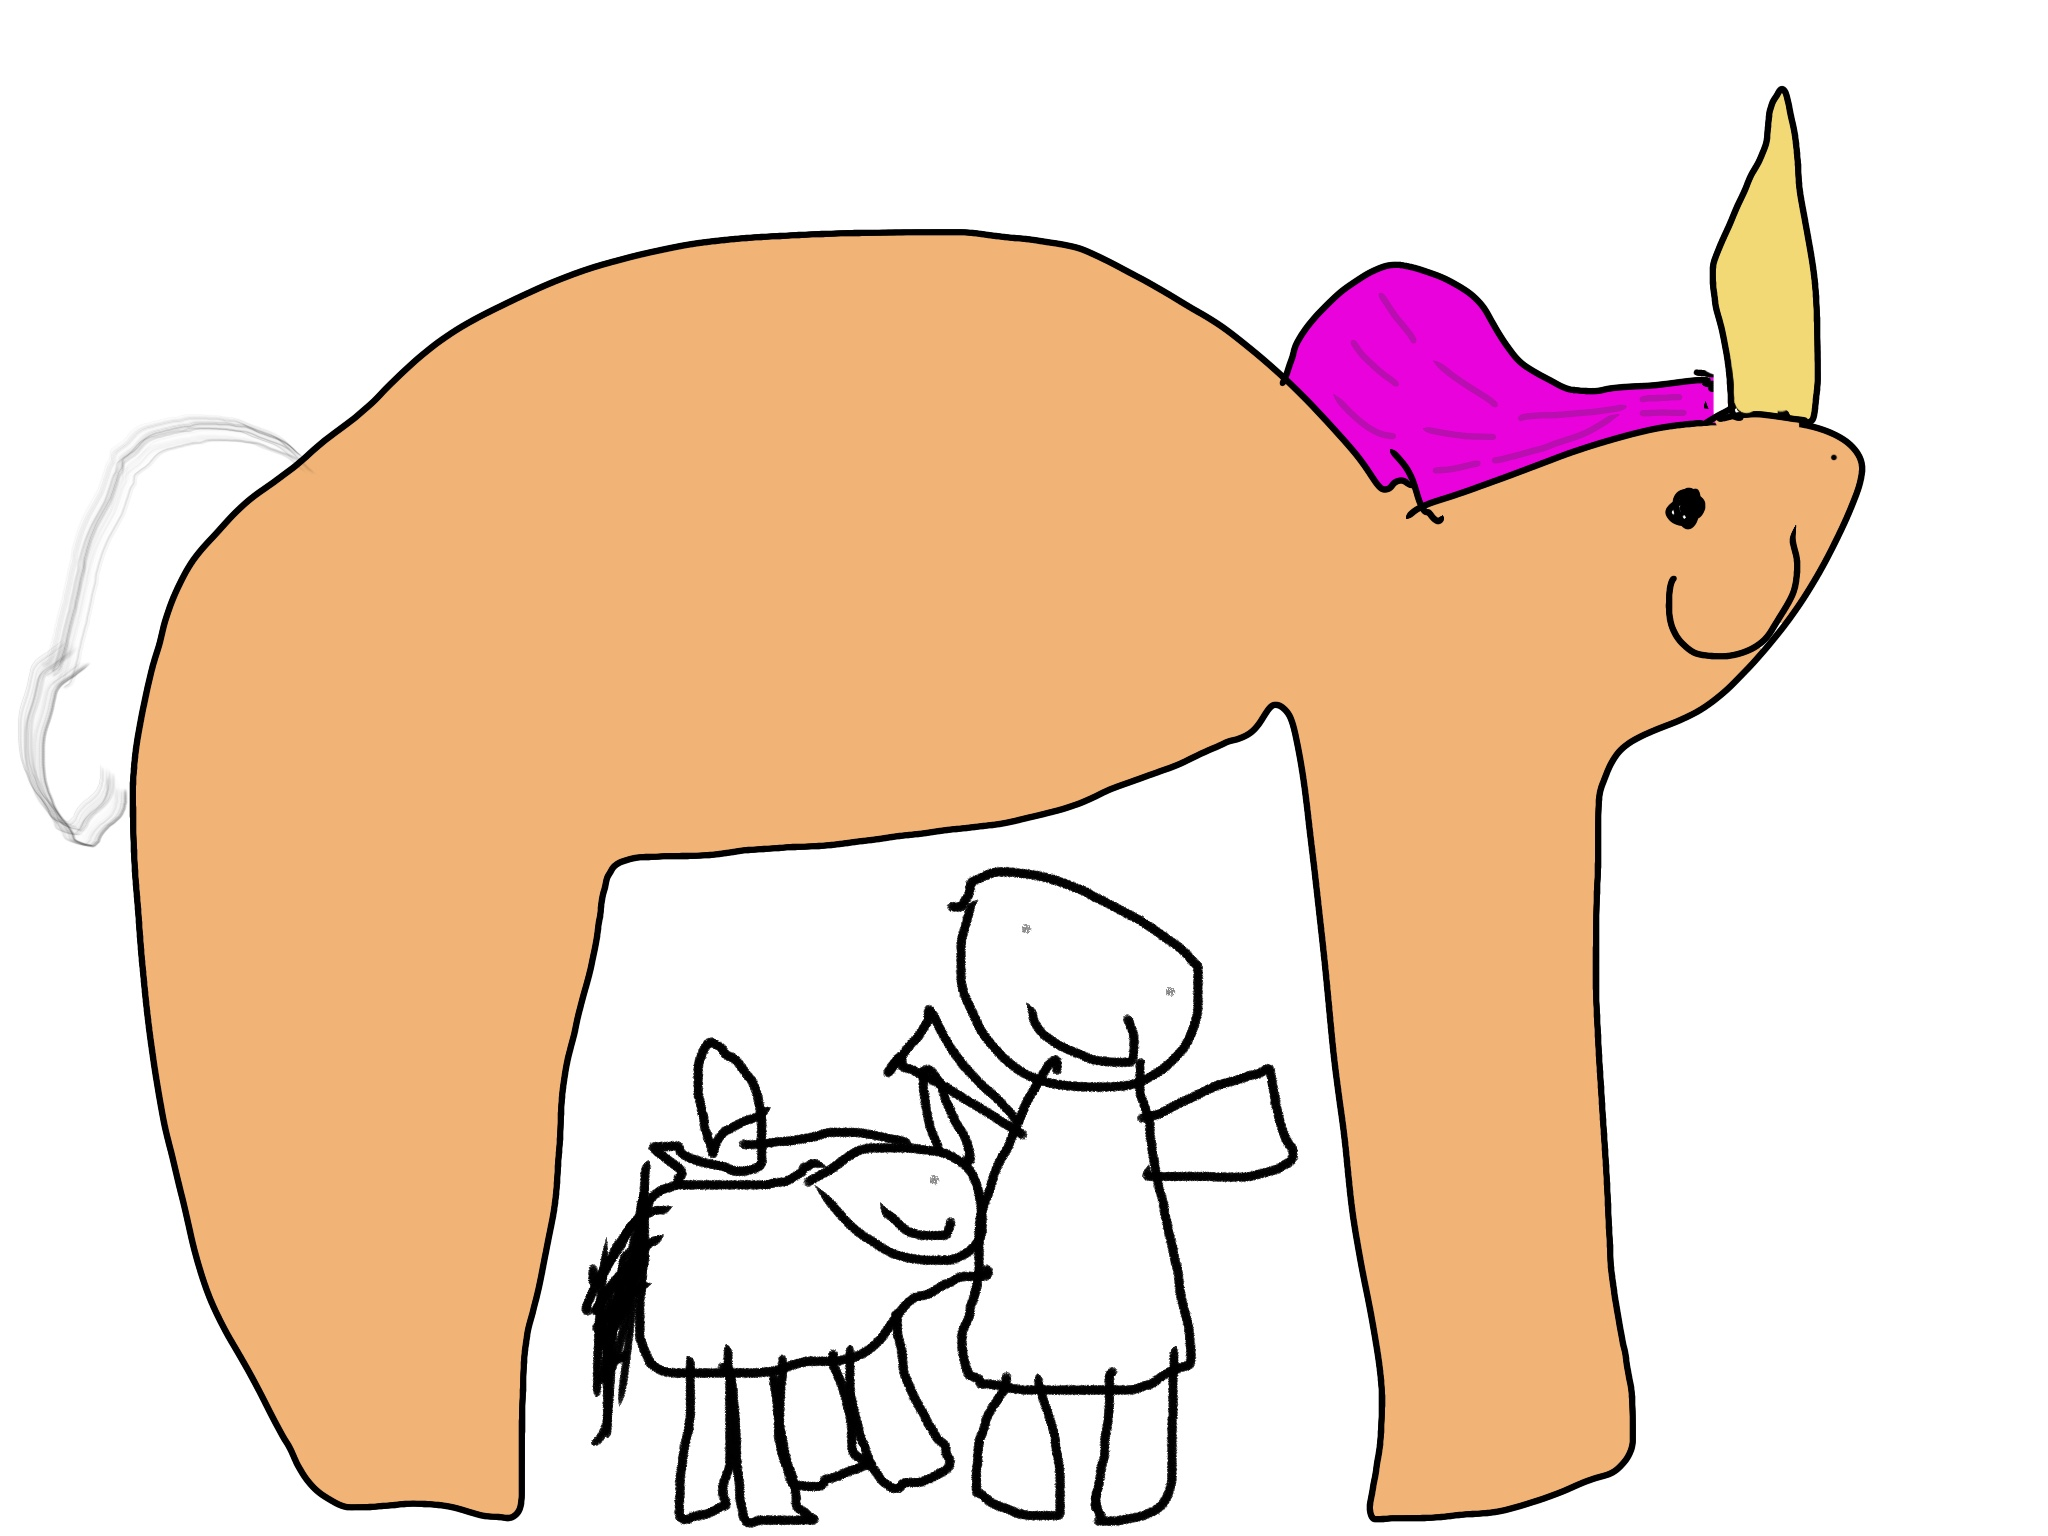 Jane's iPad art of her keeping safe under her pet unicorn. Of course.